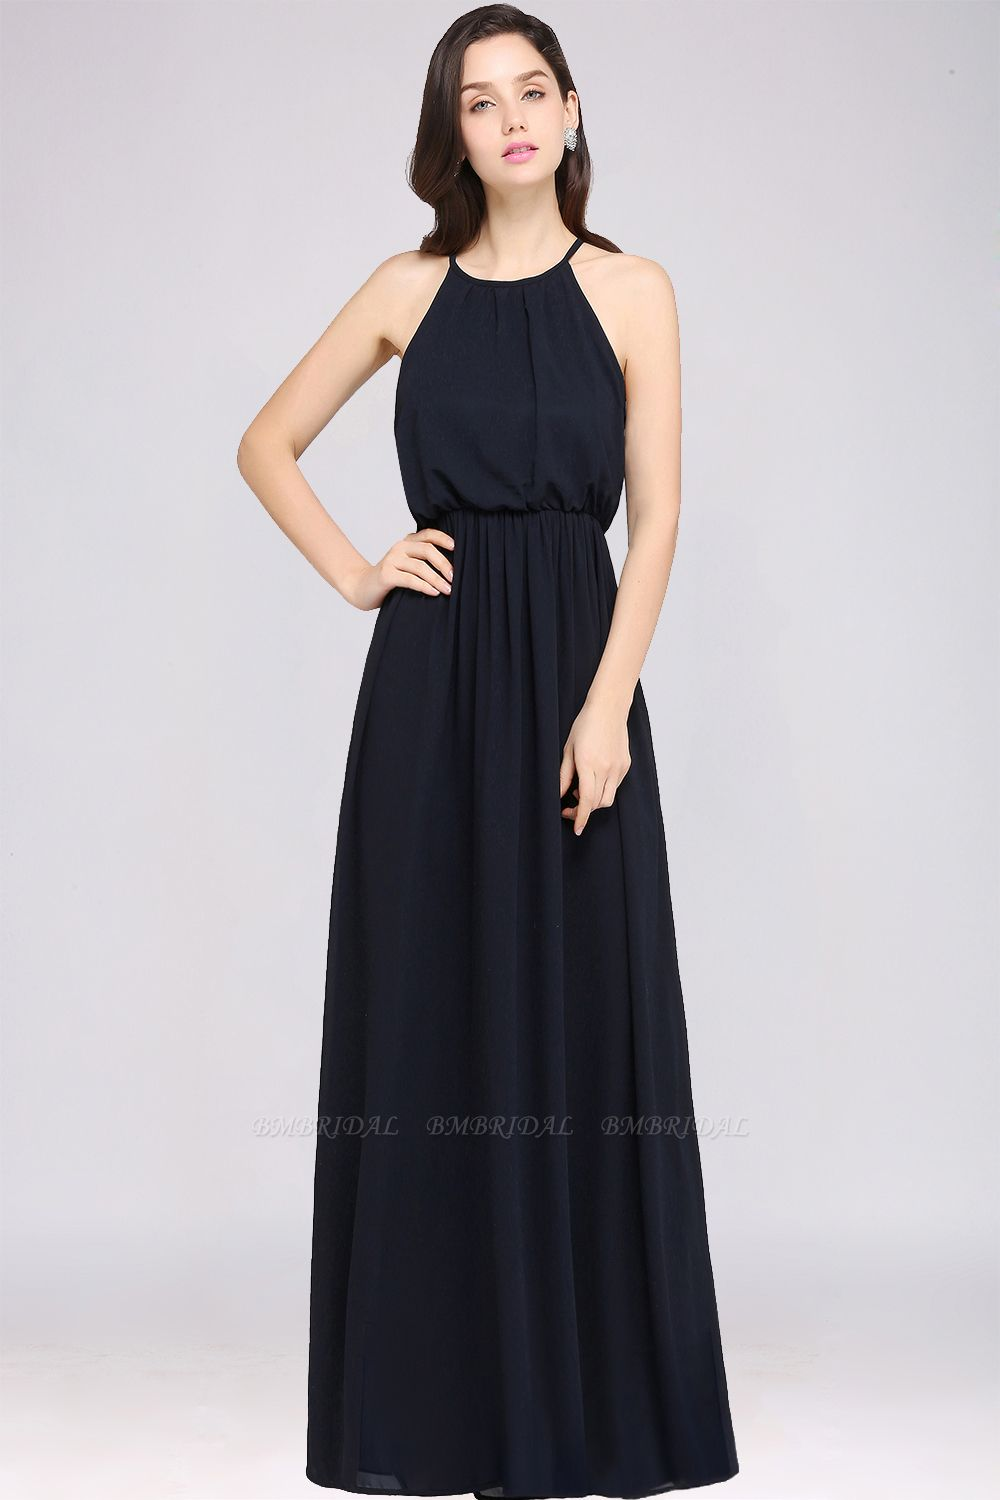 Simple A-line Halter Navy Chiffon Long Bridesmaid Dresses In Stock